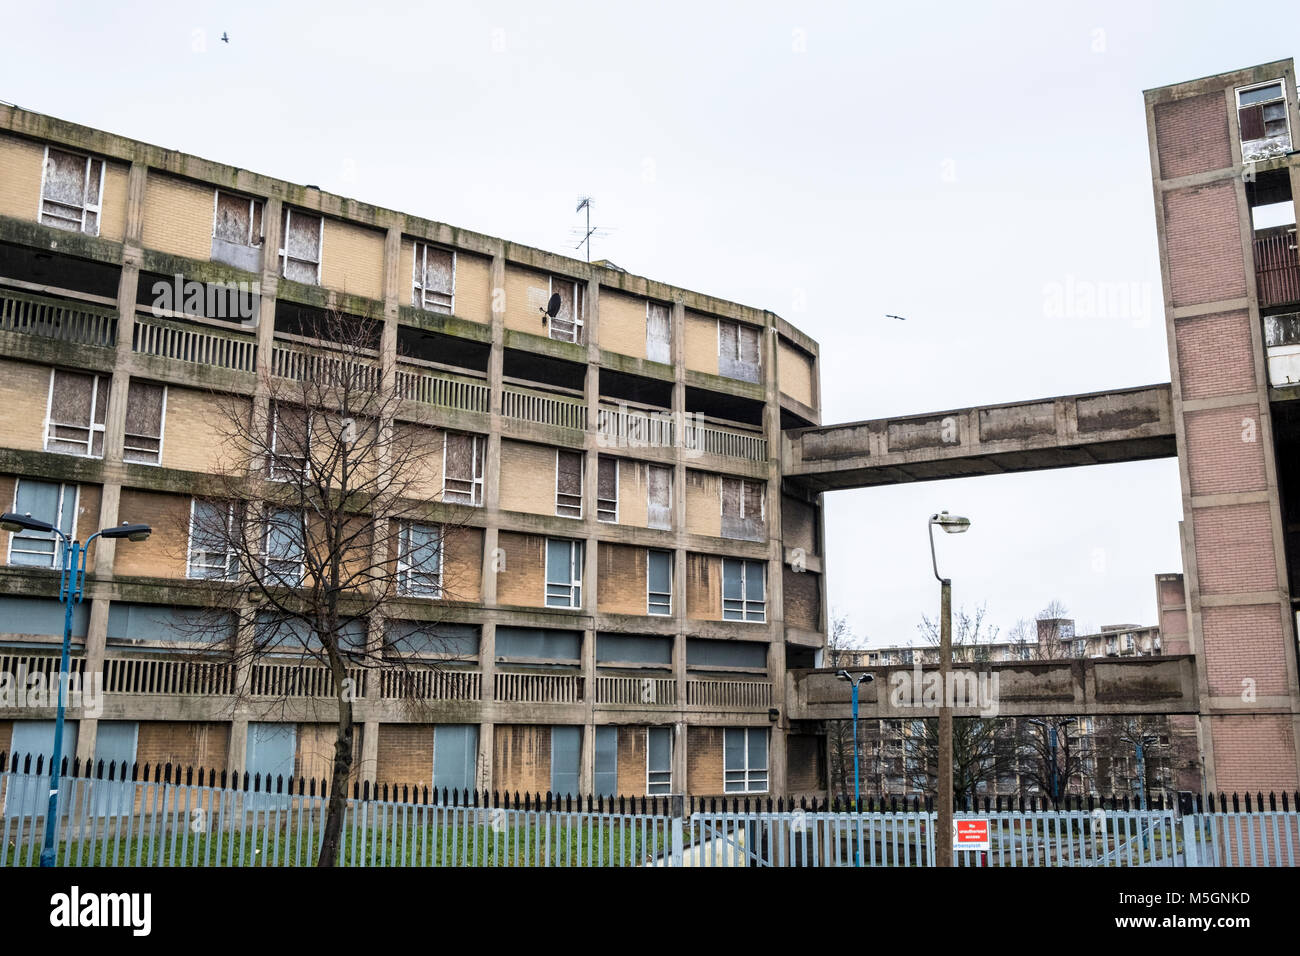 An unsafe building within a section of the Park Hill flats housing estate, Sheffield, England, UK - Stock Image